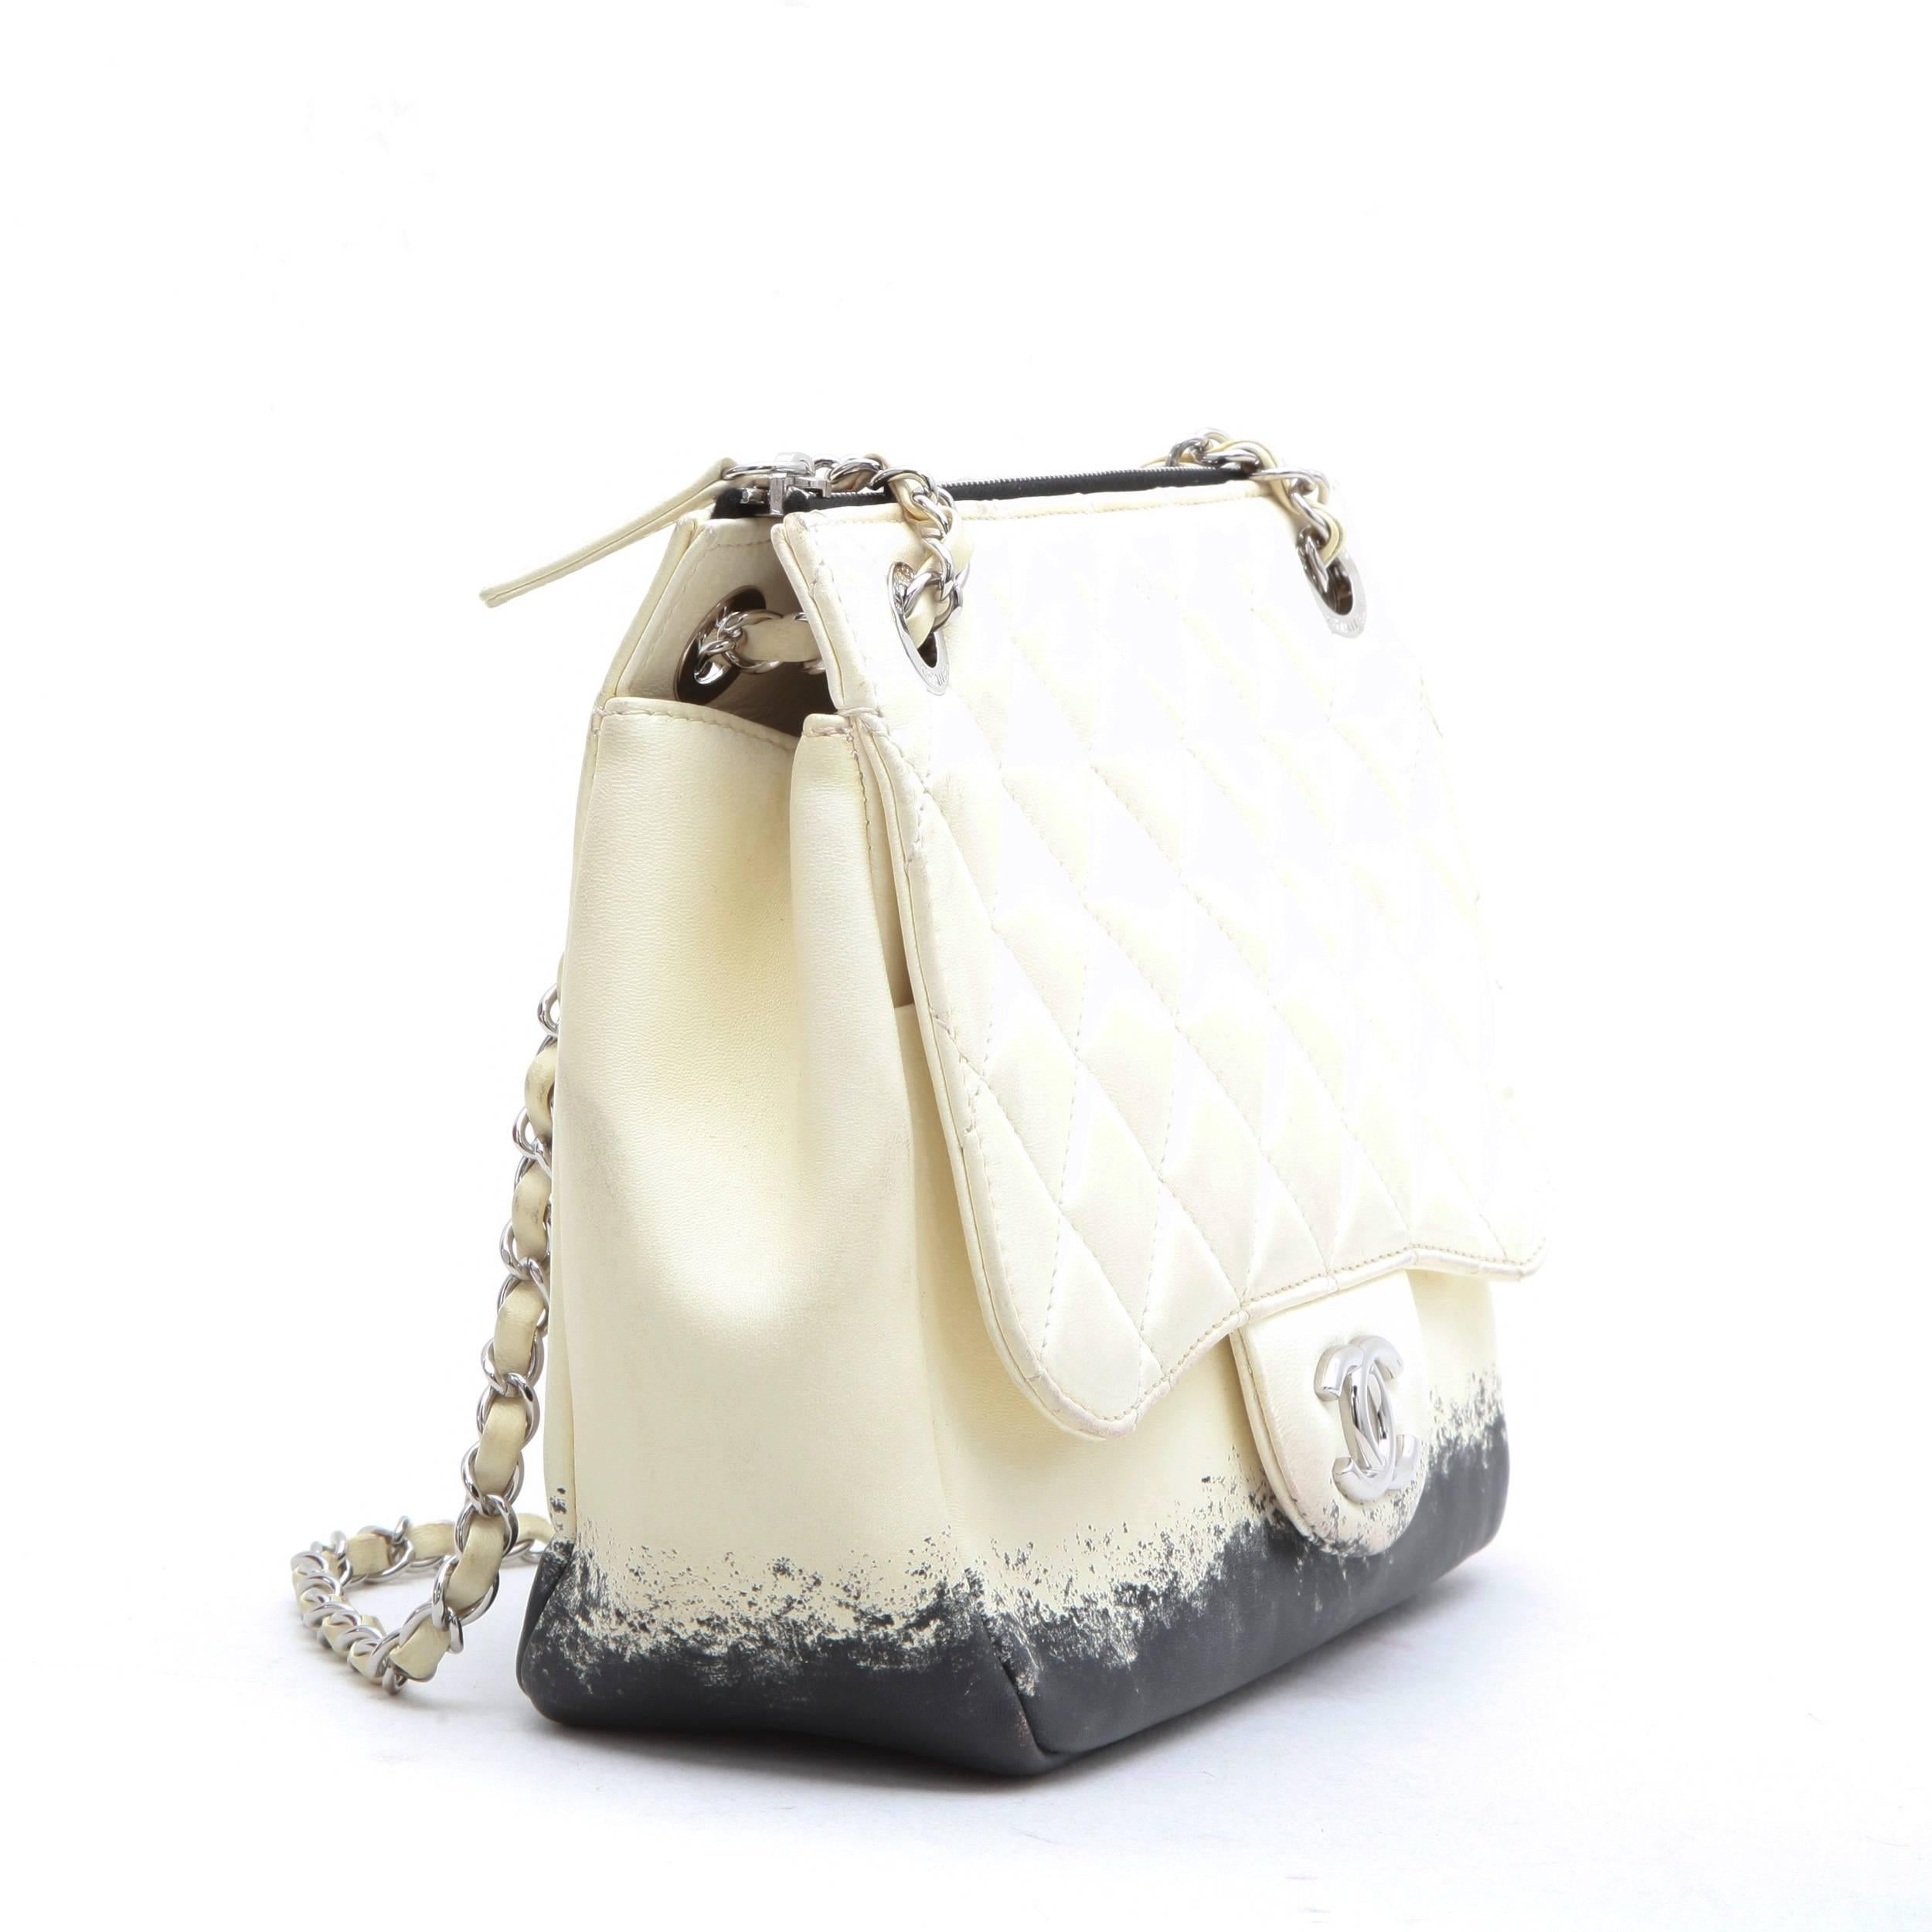 e013c1abd7b2 CHANEL Bag in Beige and Black Lamb Leather at 1stdibs